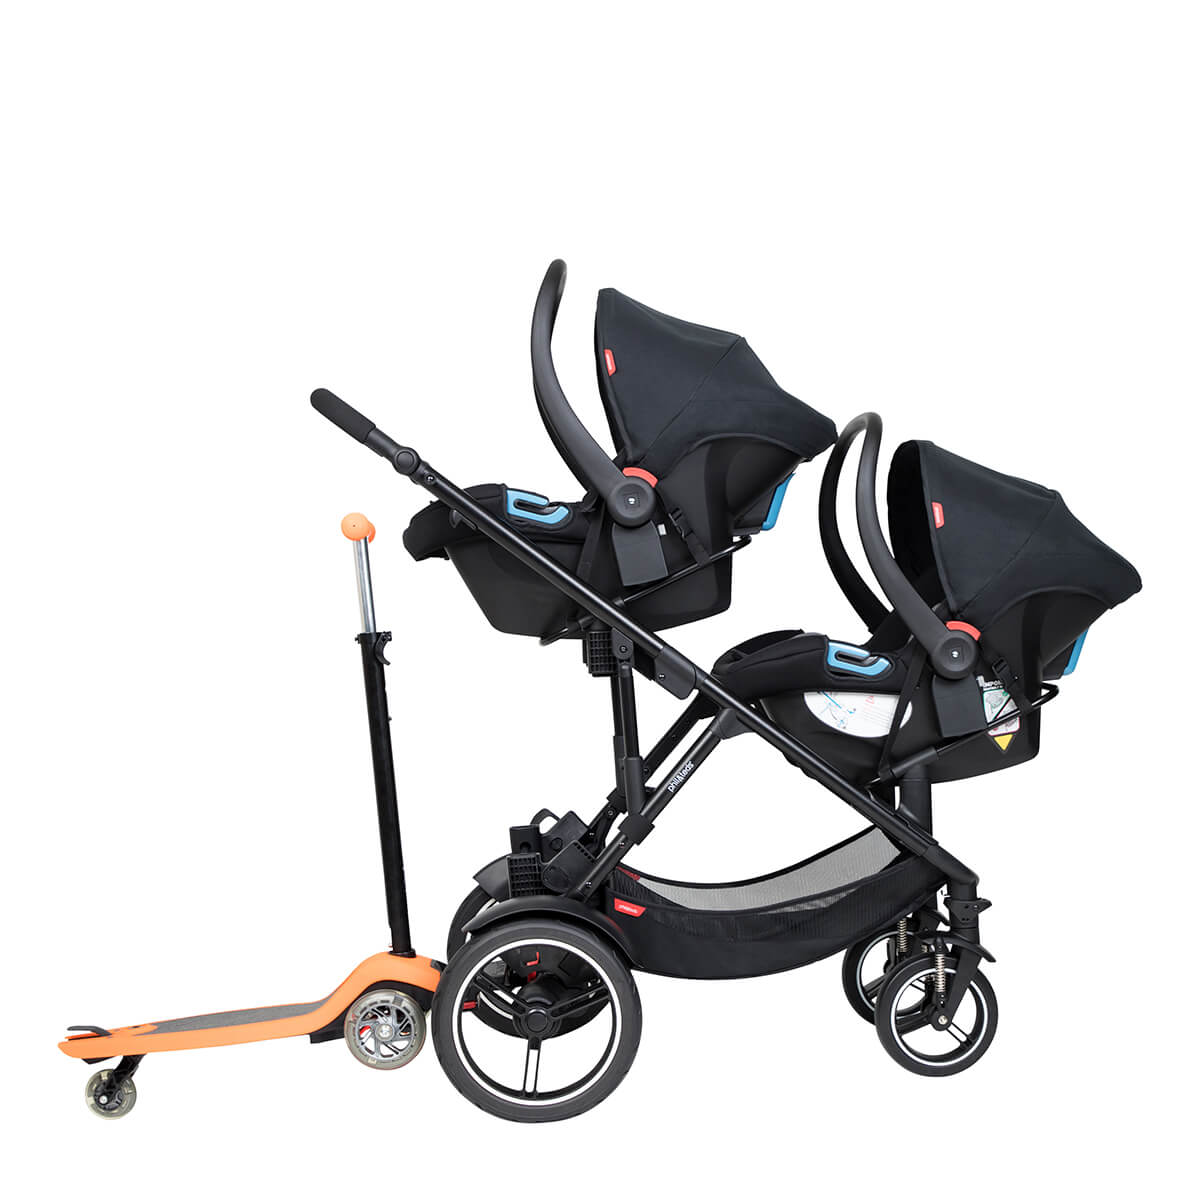 https://cdn.accentuate.io/4390319587424/19440482418872/philteds-voyager-buggy-with-double-travel-systems-and-freerider-stroller-board-in-the-rear-v1633401039302.jpg?1200x1200